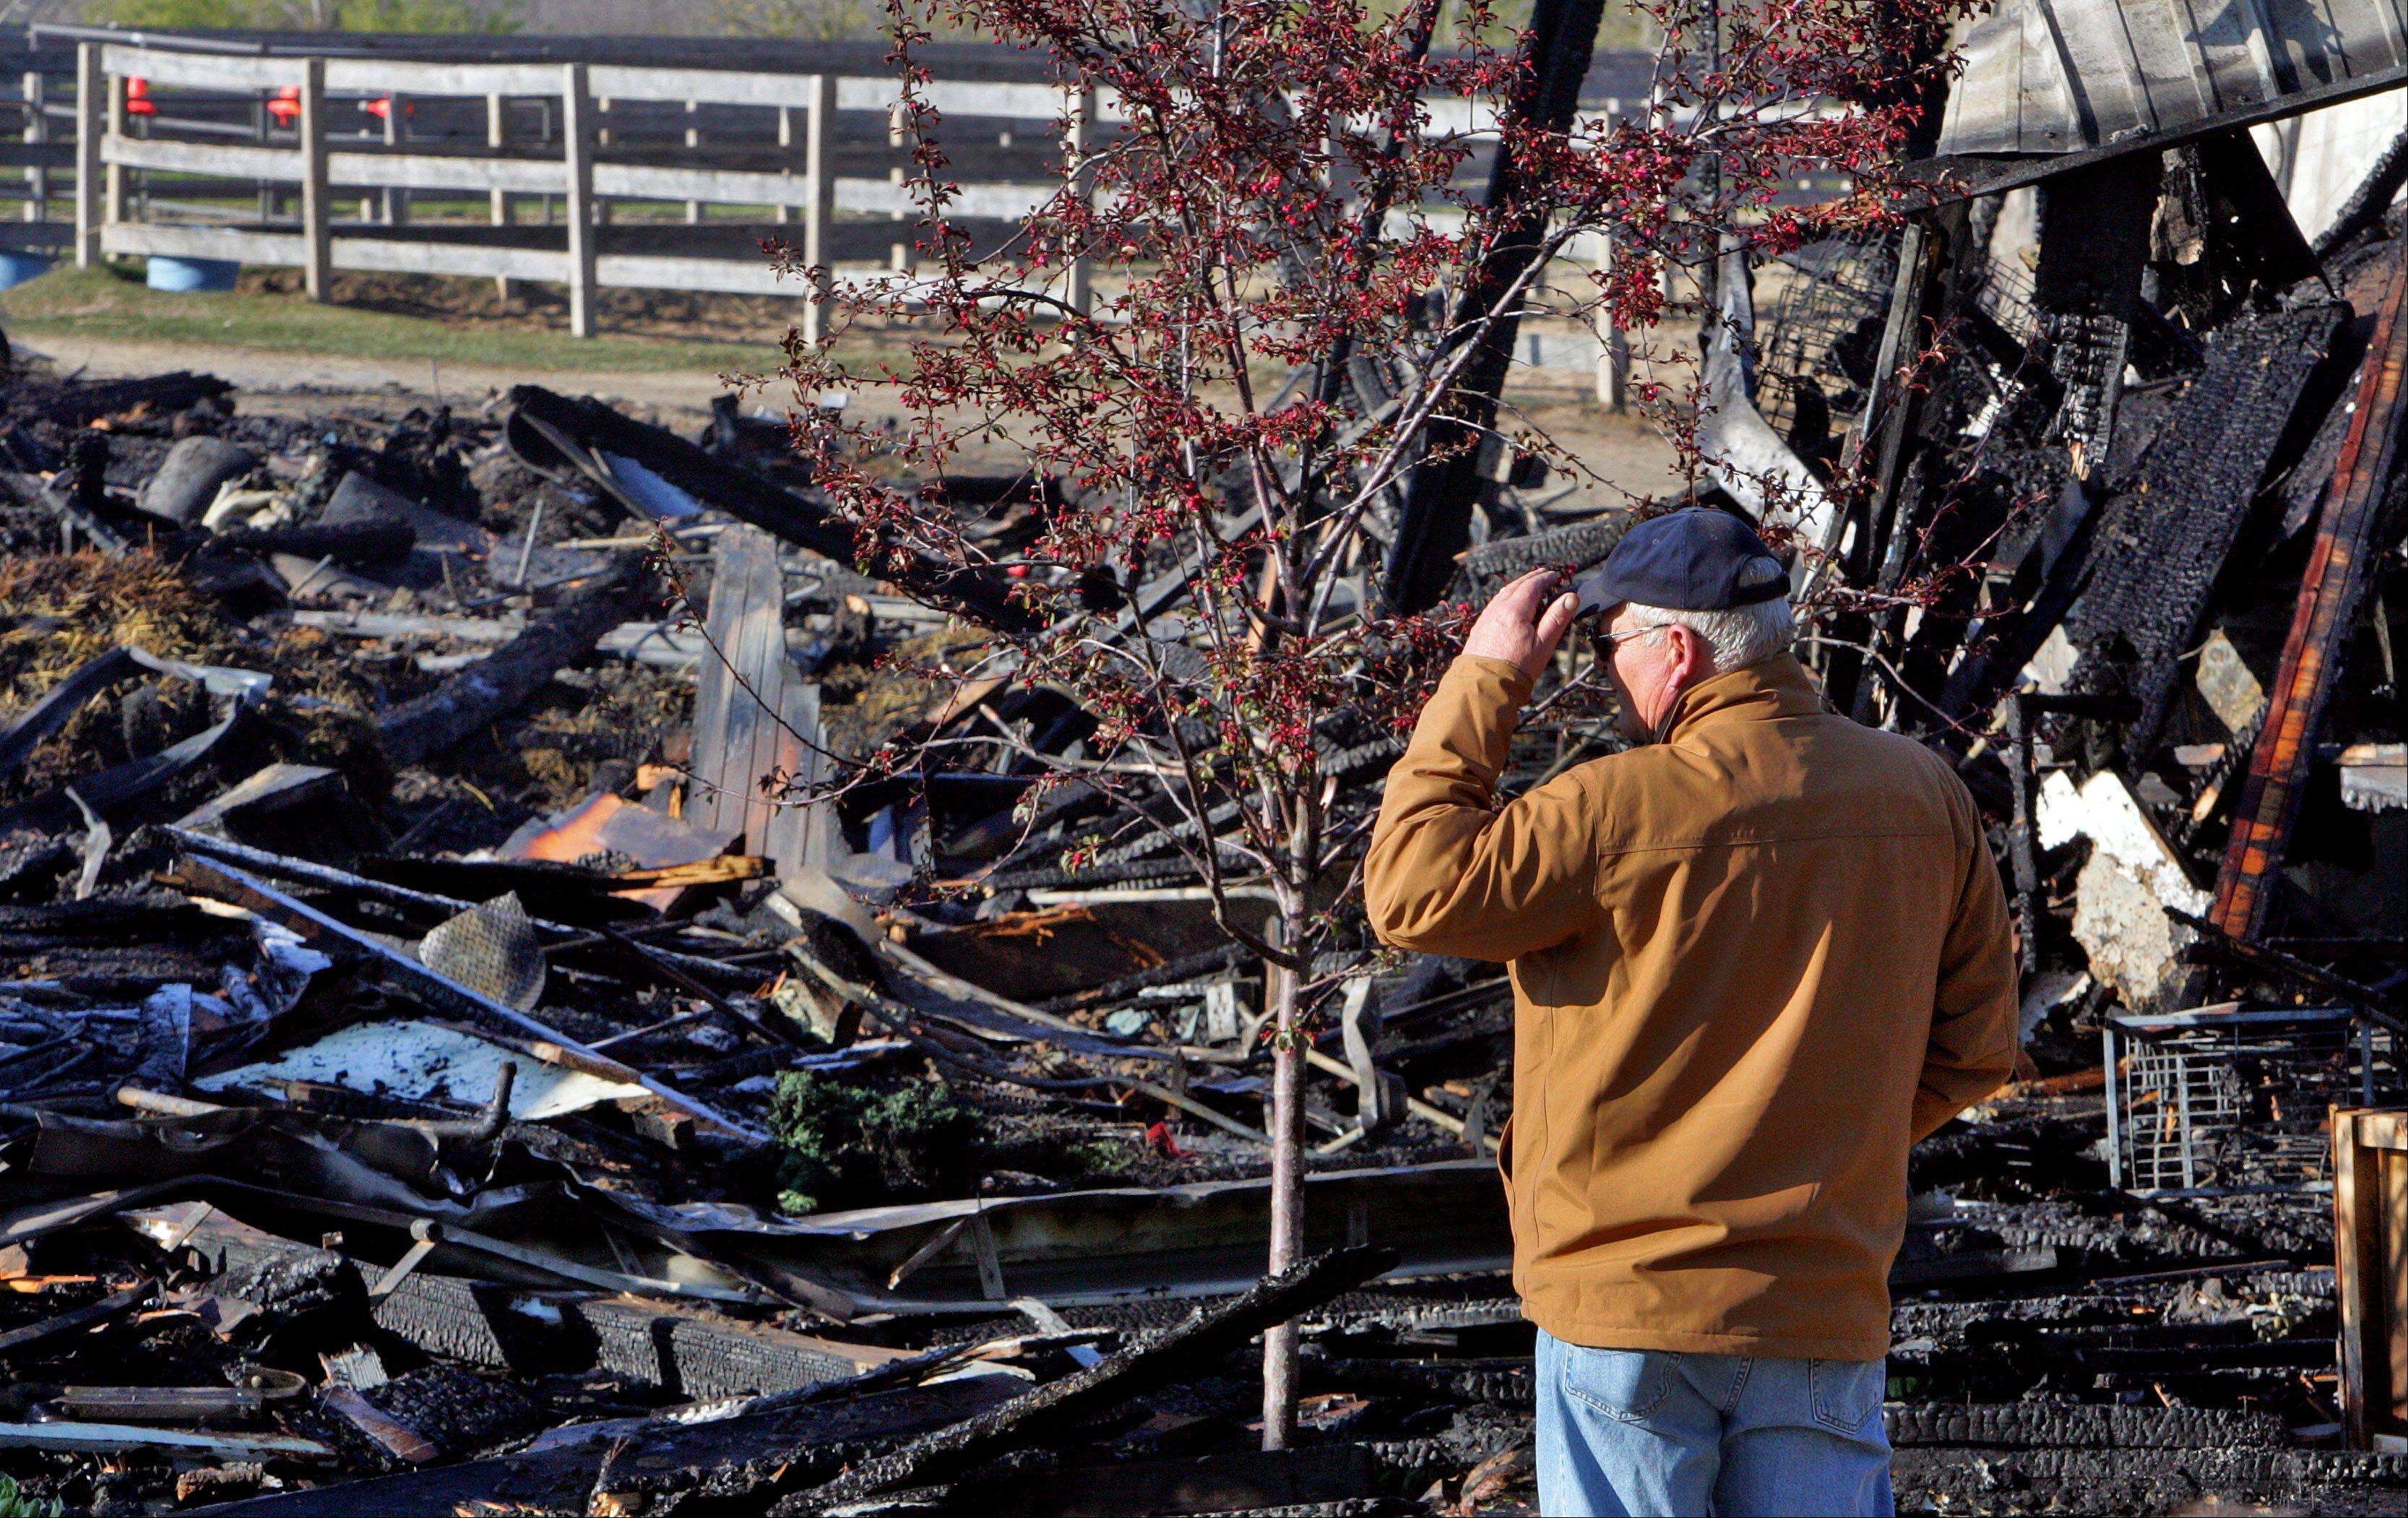 People survey the wreckage the morning after a fire destroyed Black Tie Stable and killed several horses just West of Fox Lake in McHenry County Thursday.